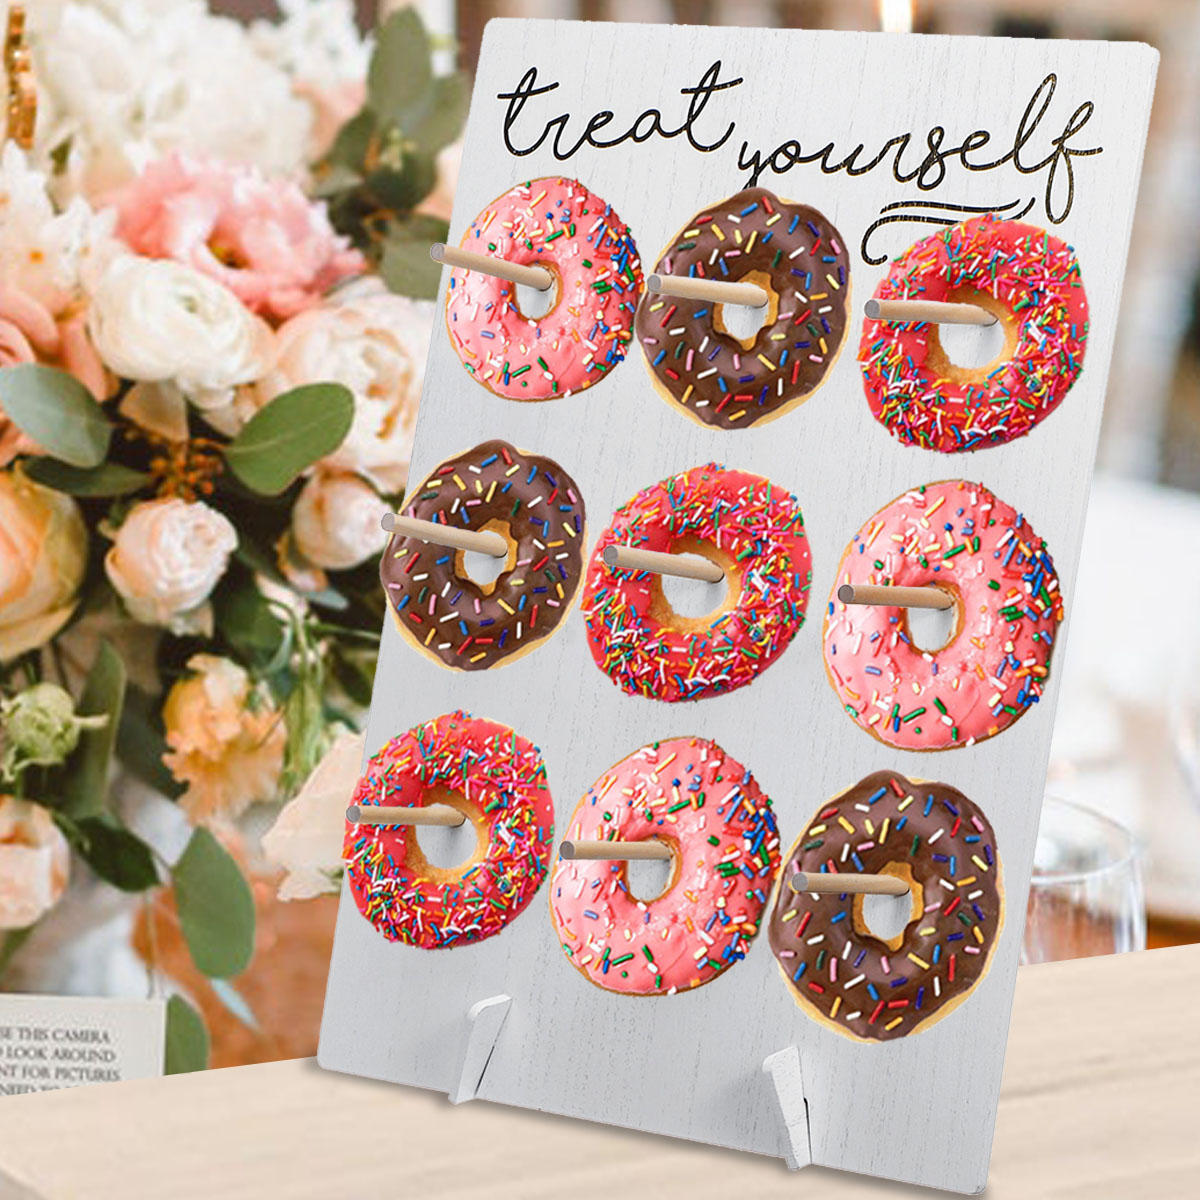 Donut wall hold candy sweet stand wooden table holder wedding decor  supplies diy decorations holder Sale - Banggood.com